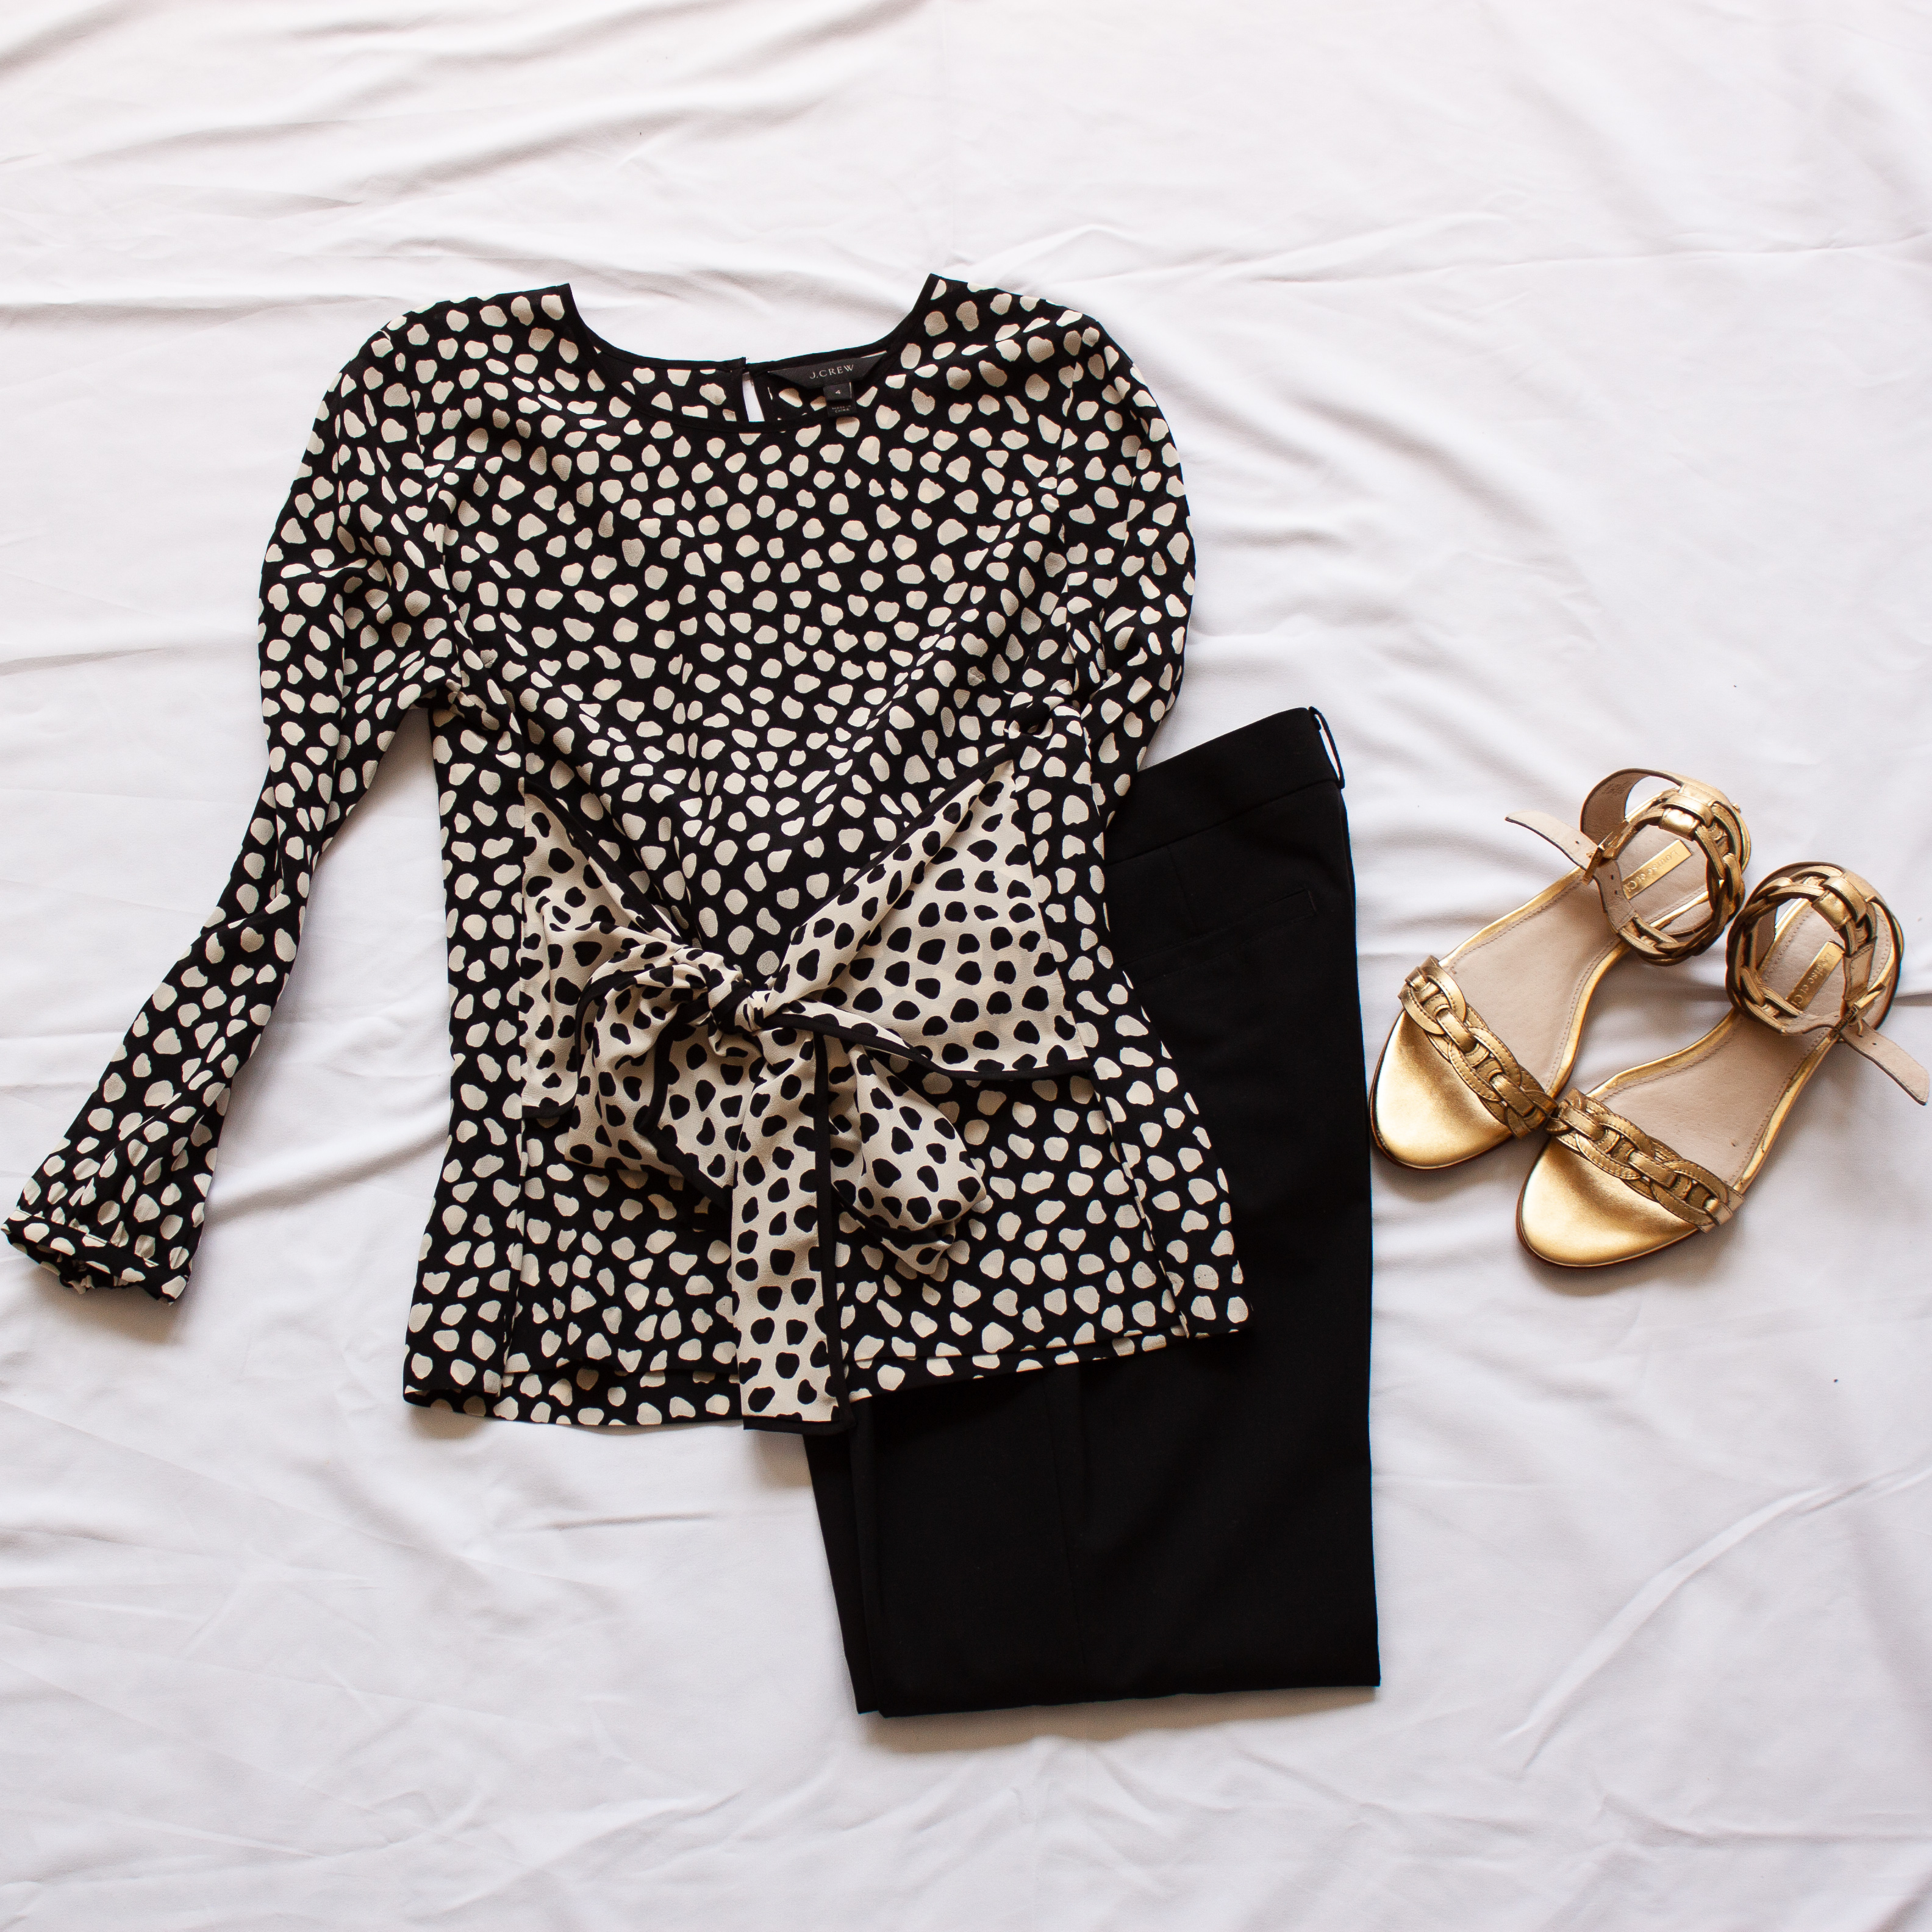 NYC bound theatre outfit polka dot top